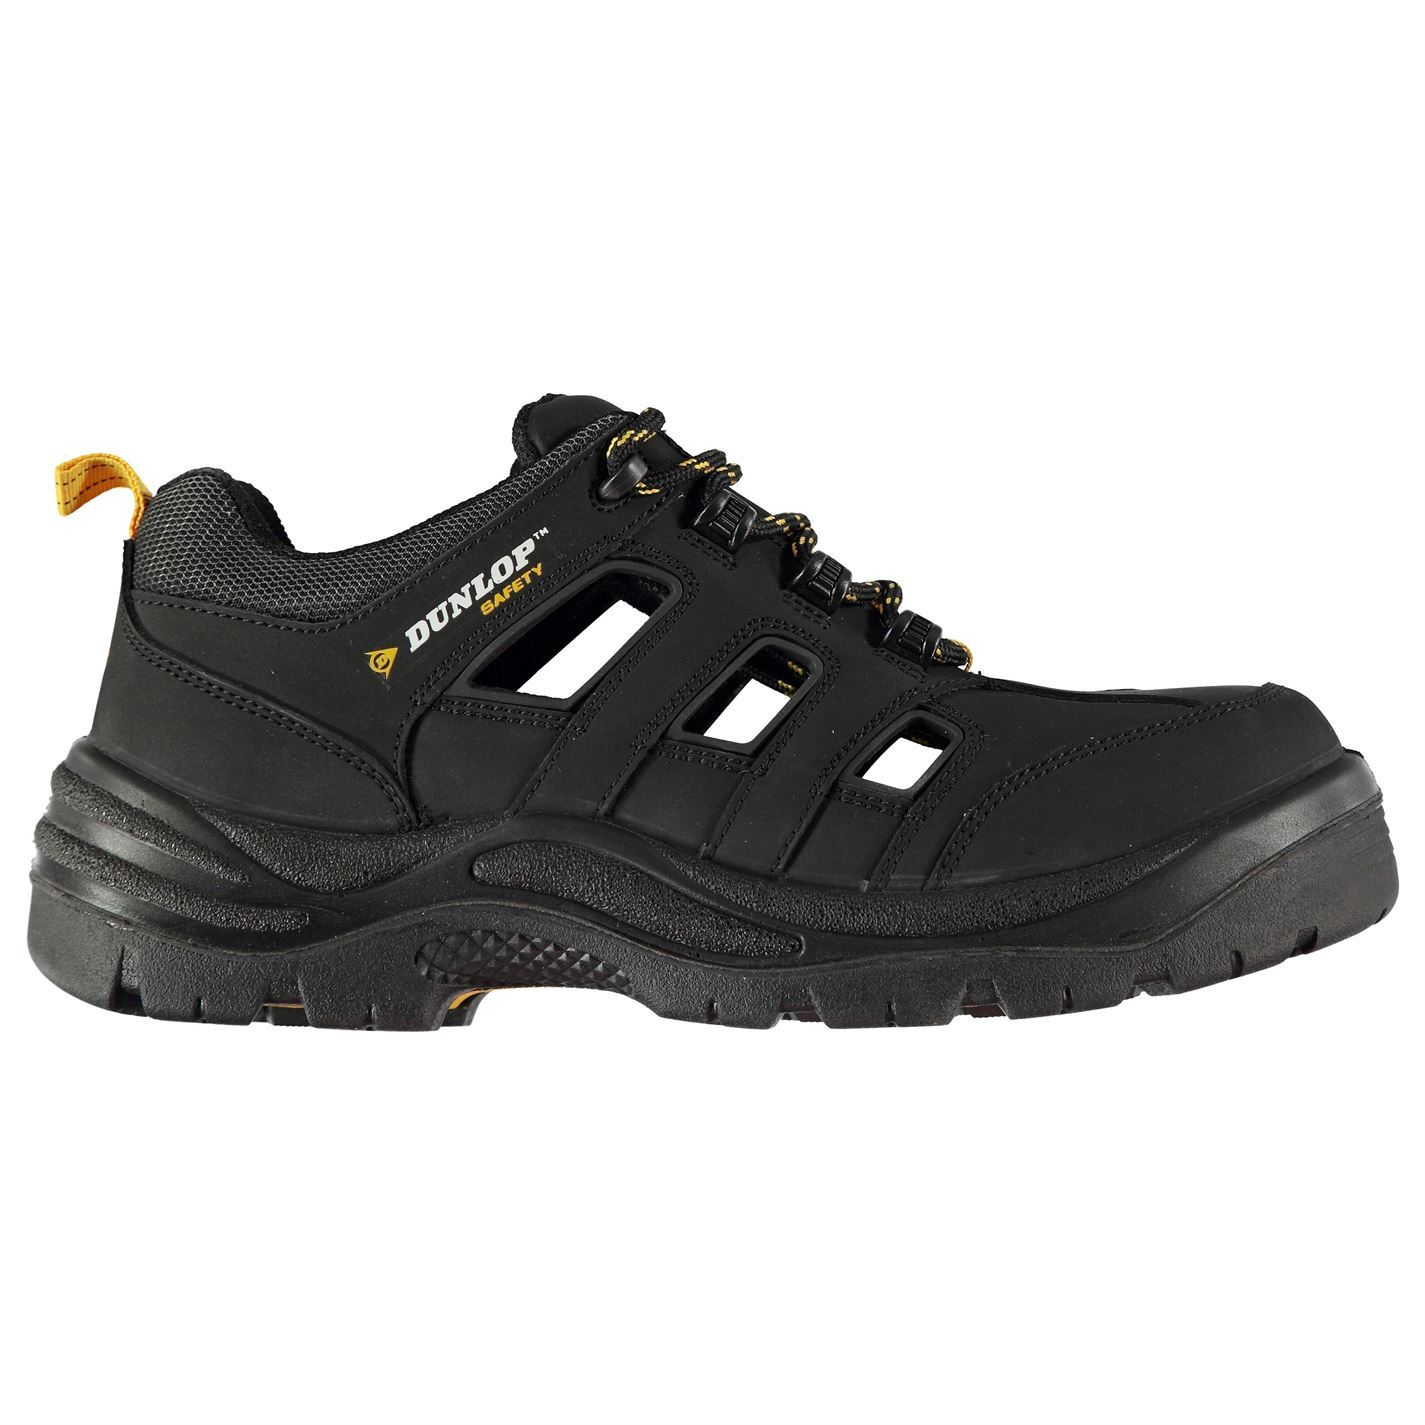 9097b2100a2 Details about Dunlop Hawaii Steel Toe Cap Safety Boots Mens Black Work Shoes